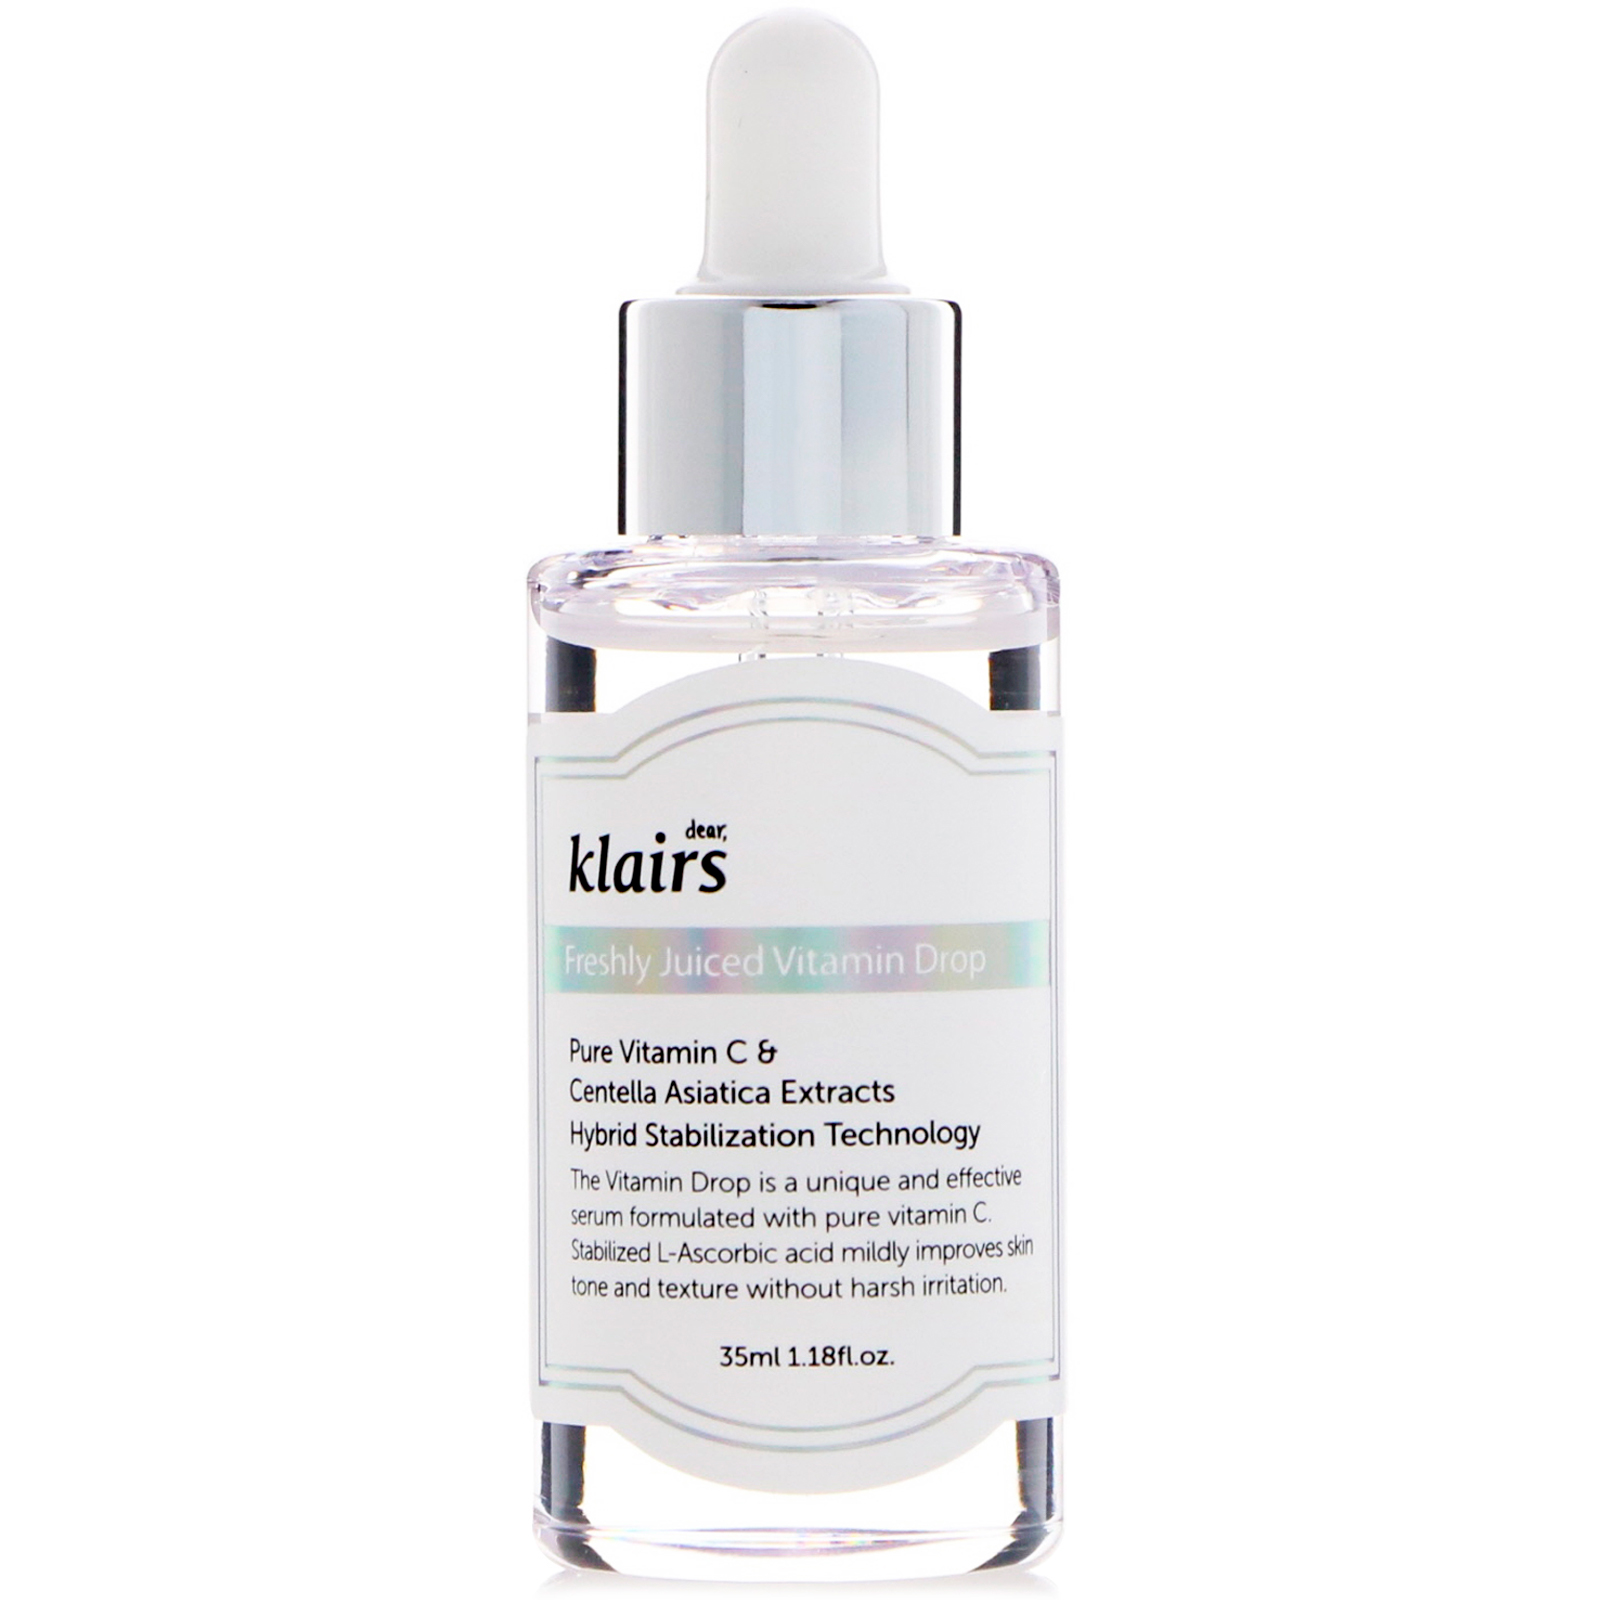 Dear, Klairs Freshly Juiced Vitamin C Serum